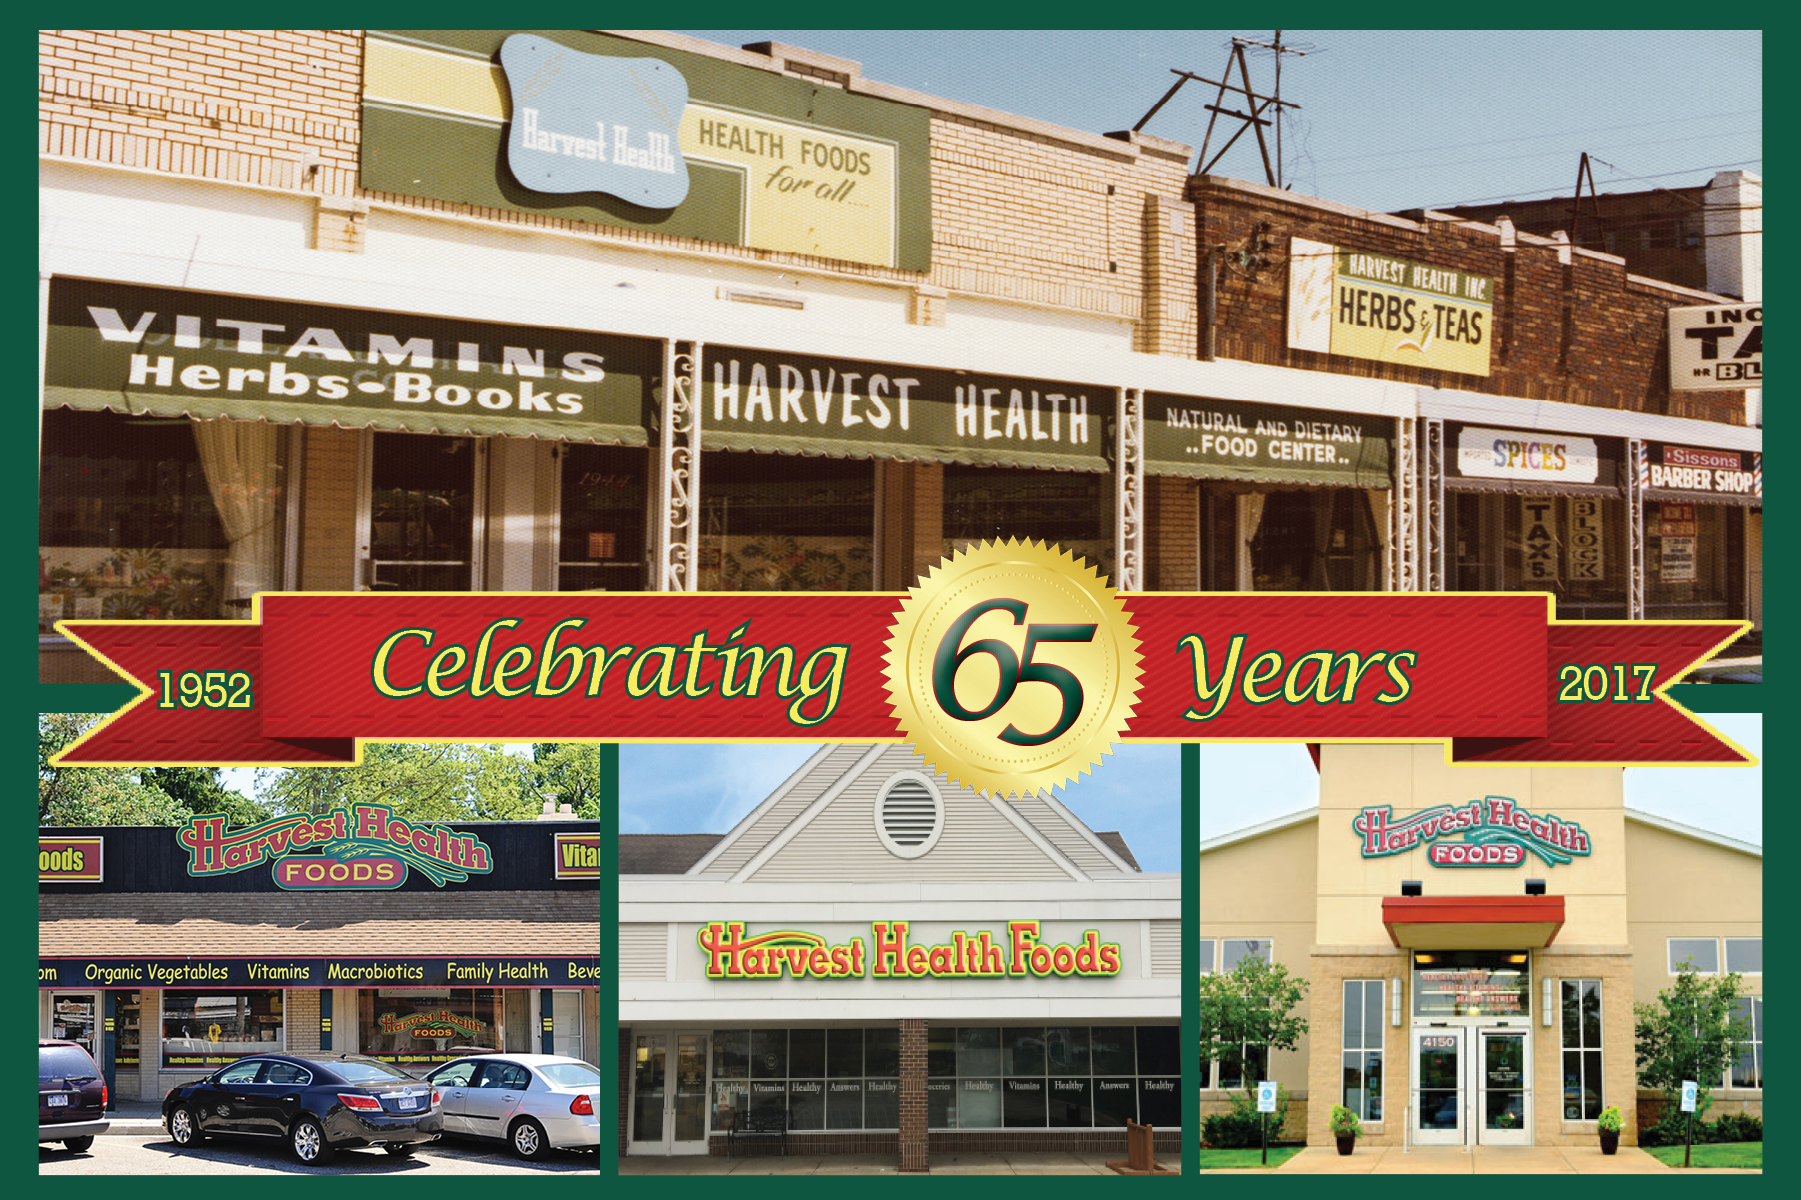 Harvest Health Food Celebrates 65 Years!